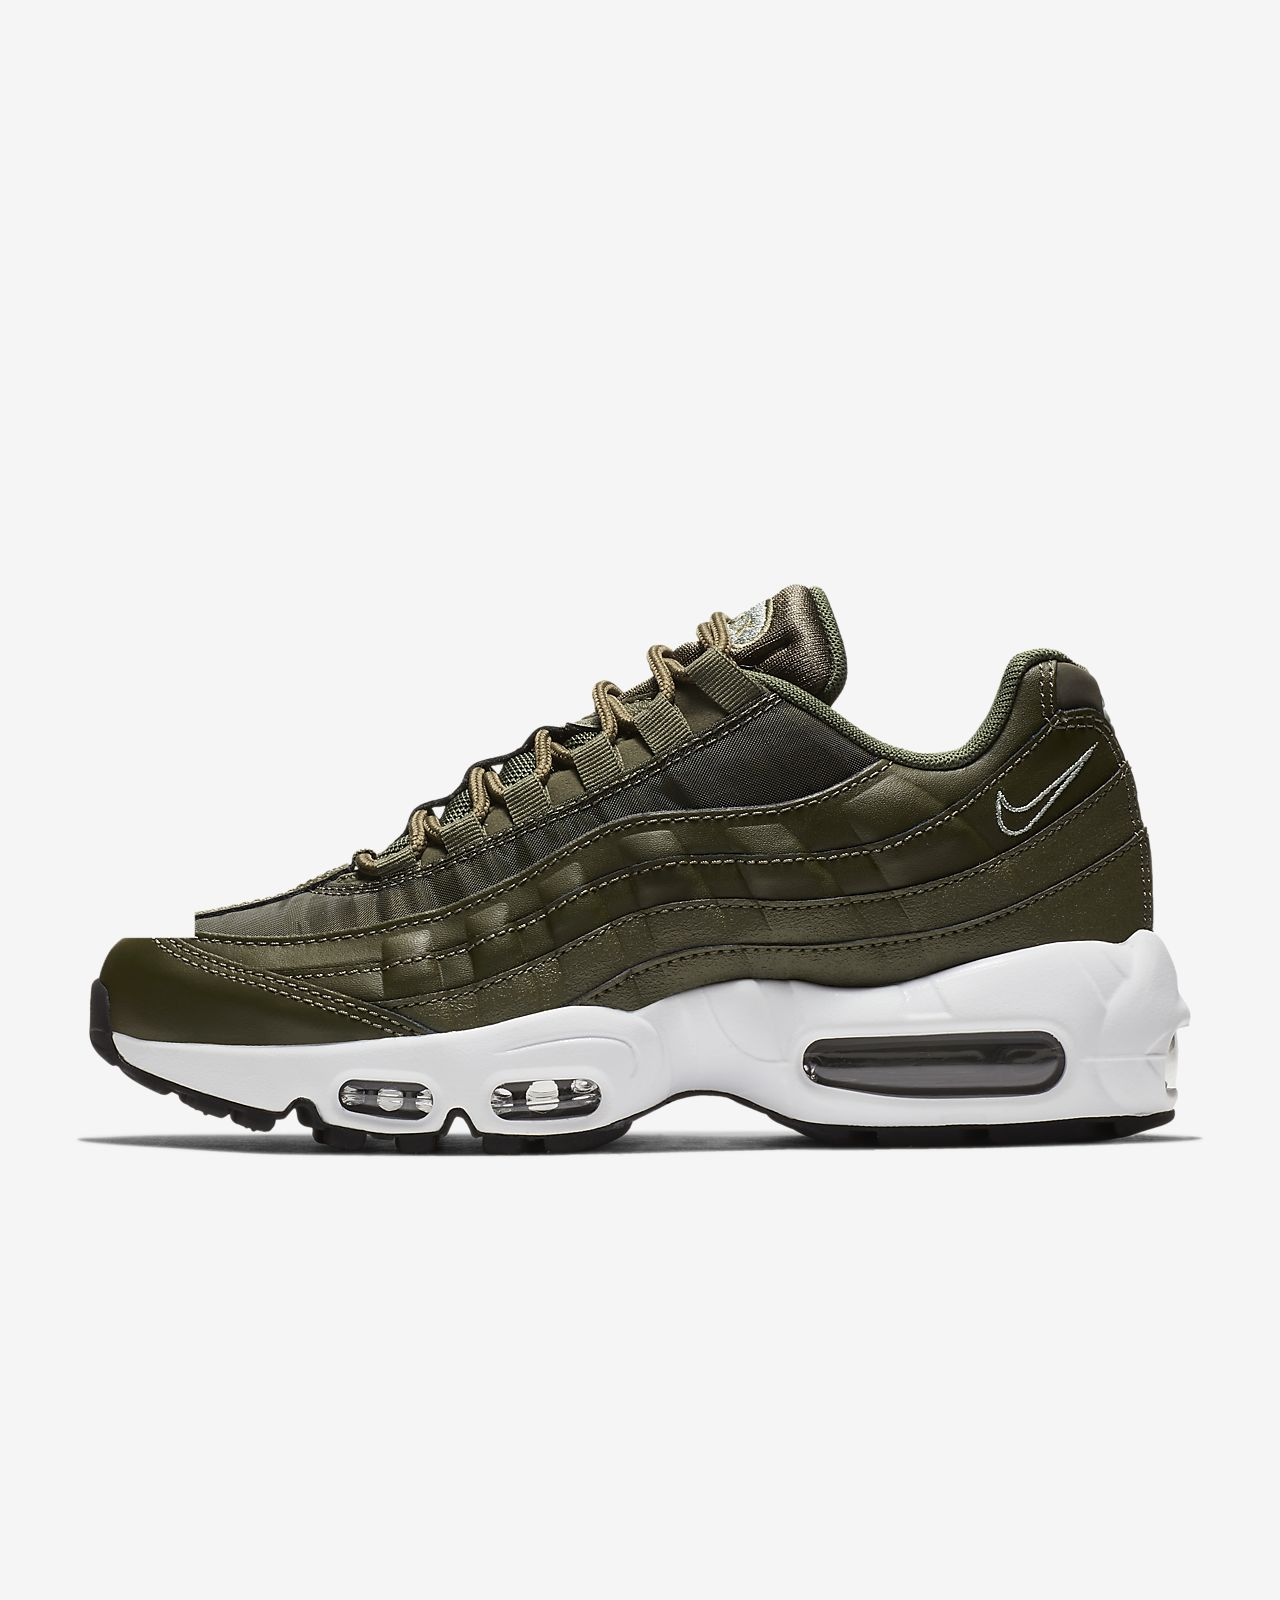 premium selection 02074 11ba3 5d5df b8f0d coupon code for nike air max 95 og womens shoe 46776 5df0a